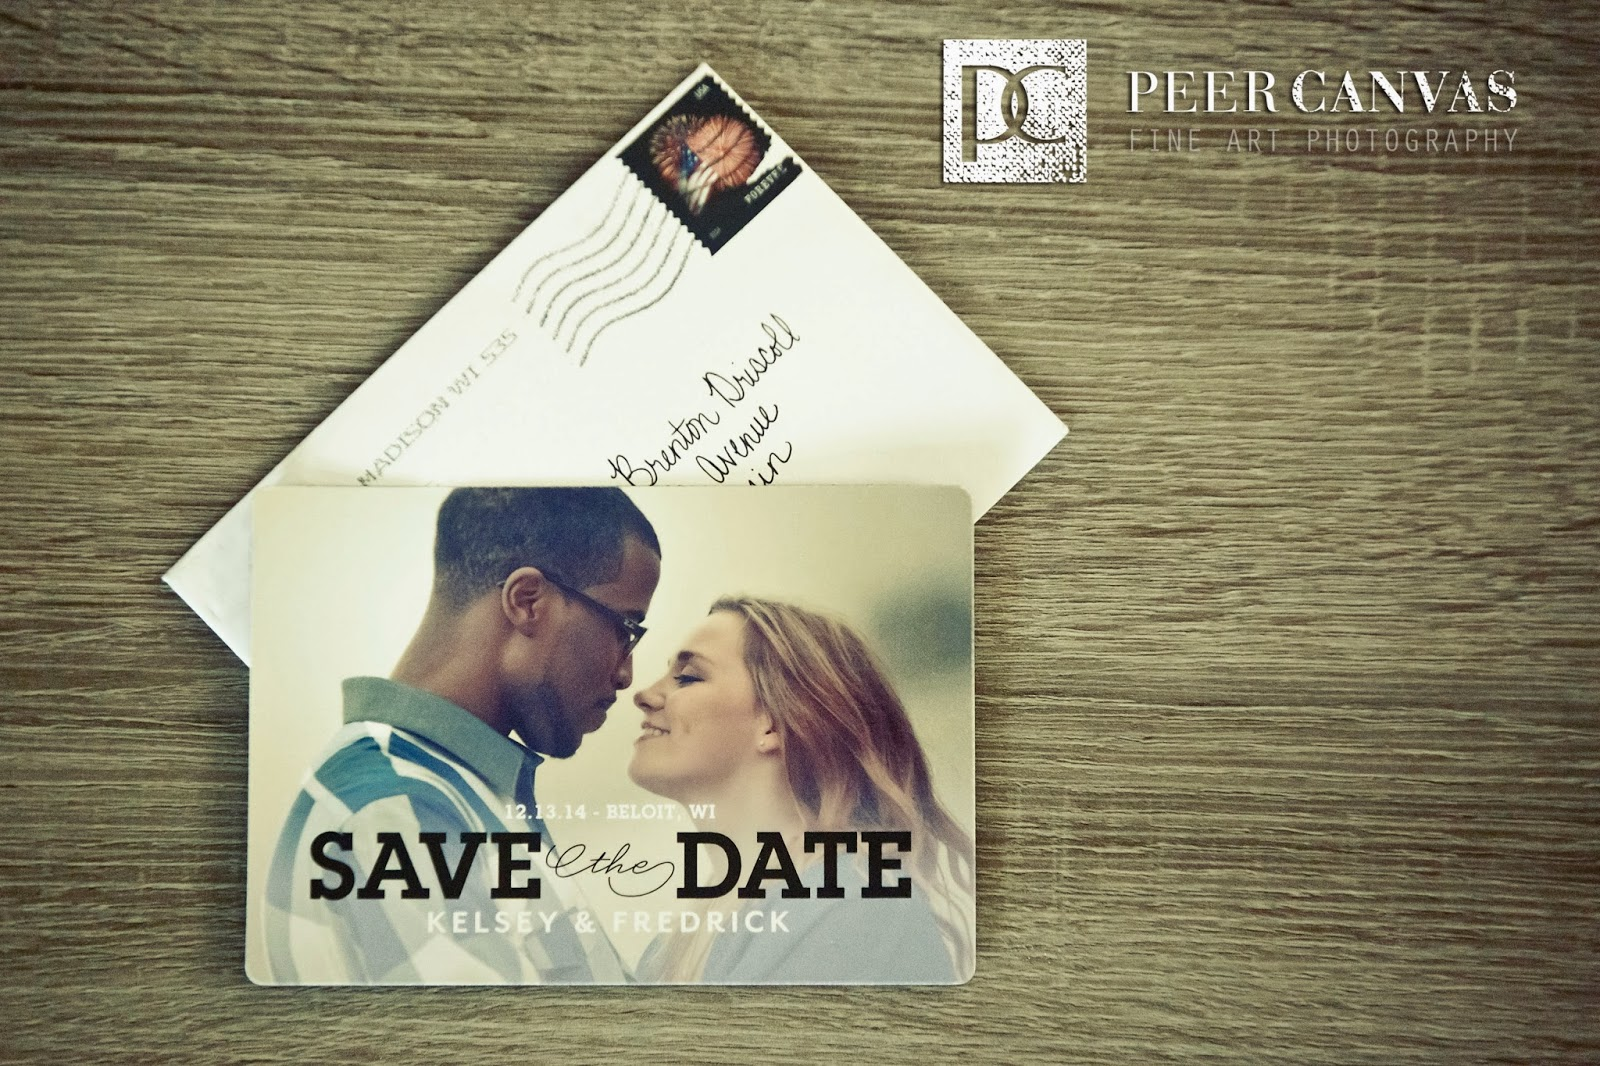 Save The Dates by Wedding Paper Divas Peer Canvas Wedding – Save the Dates Wedding Paper Divas